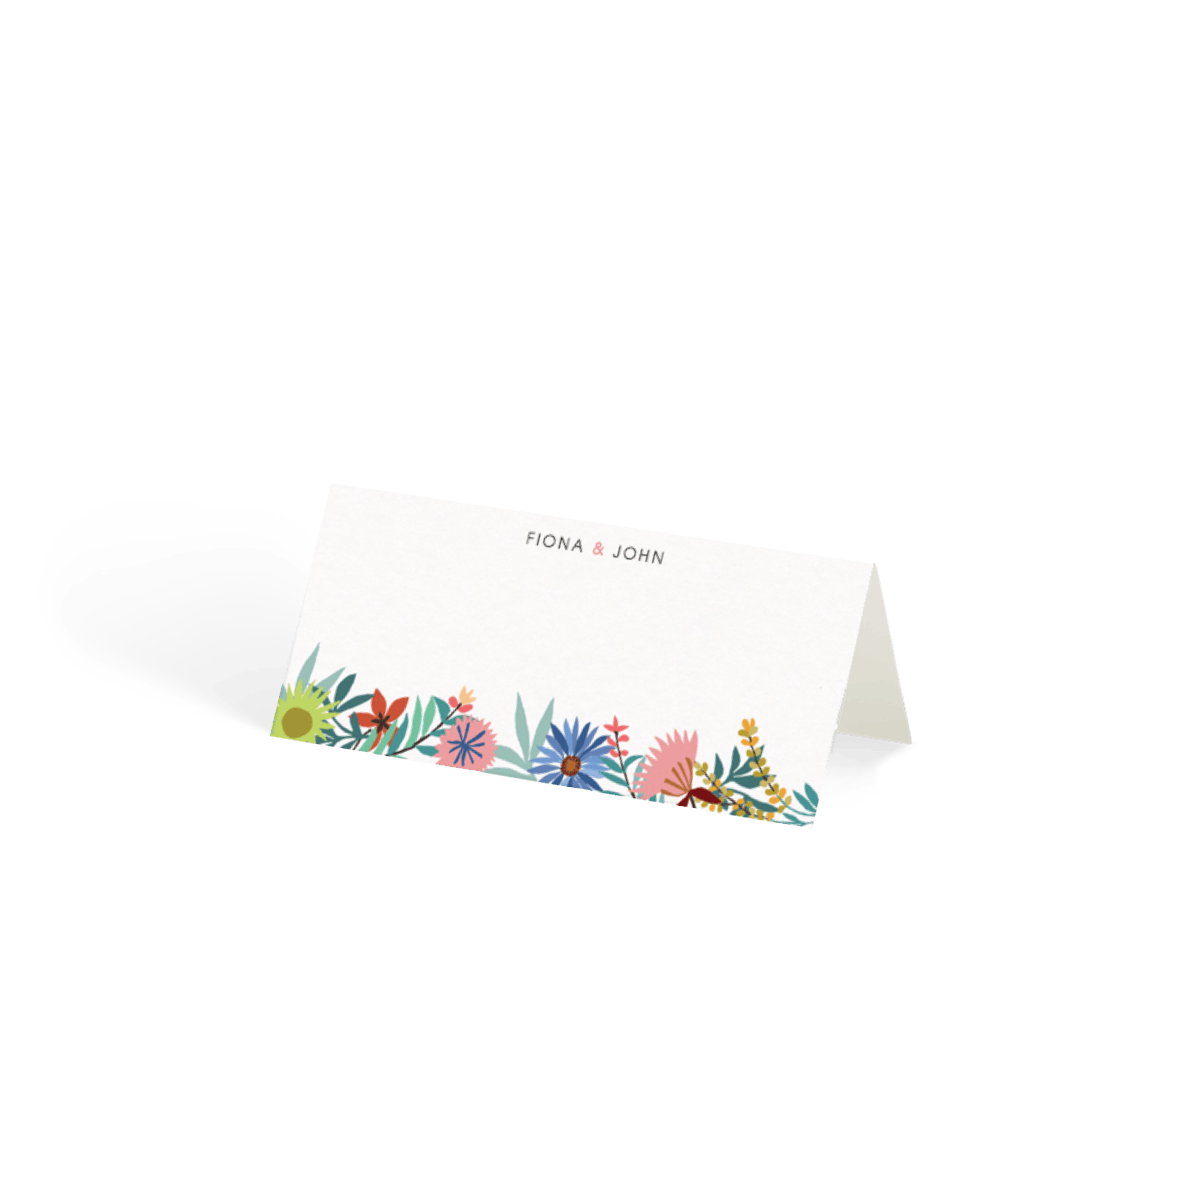 Https%3a%2f%2fwww.papier.com%2fproduct image%2f15858%2f8%2fmeadow flowers 4191 front 1484152945.png?ixlib=rb 1.1